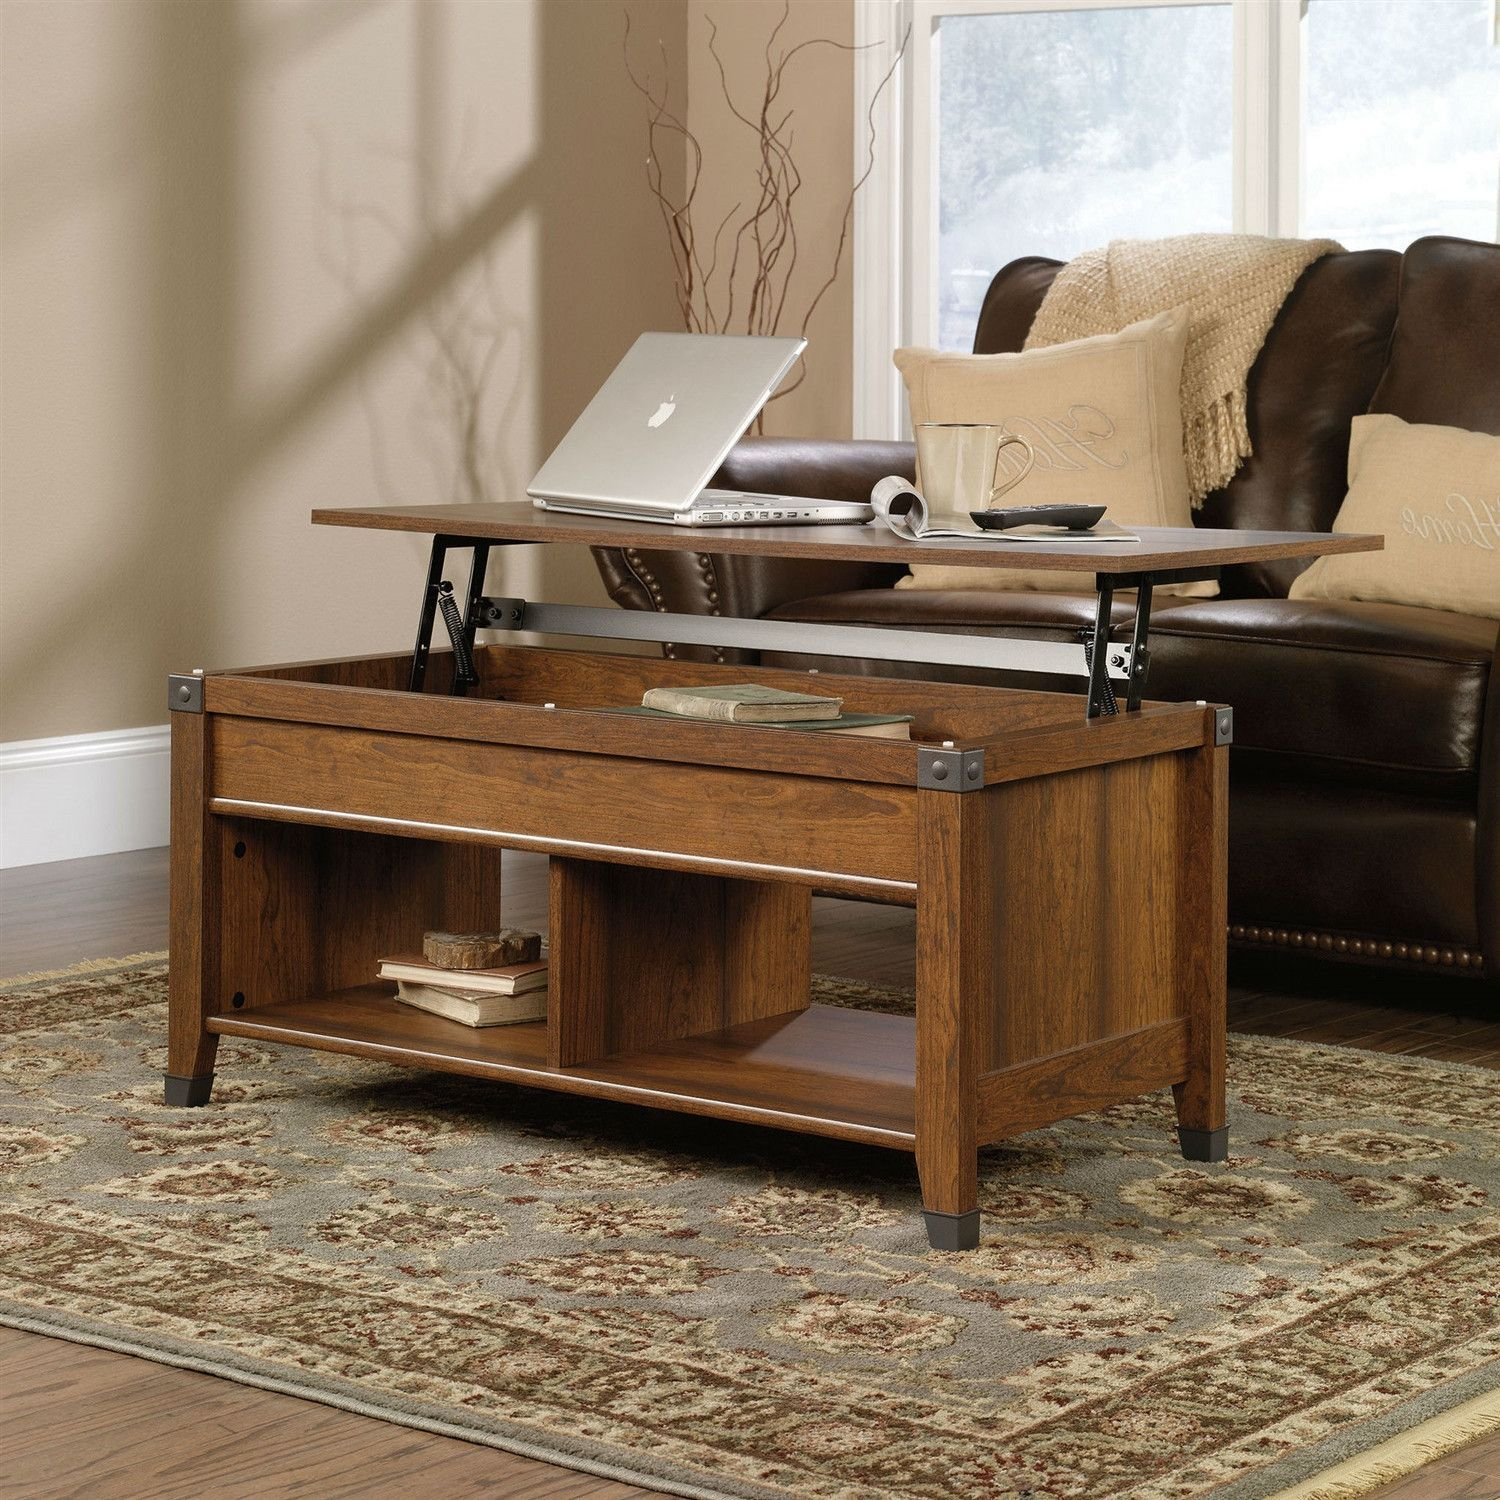 Lifttop coffee table in cherry wood finish products pinterest